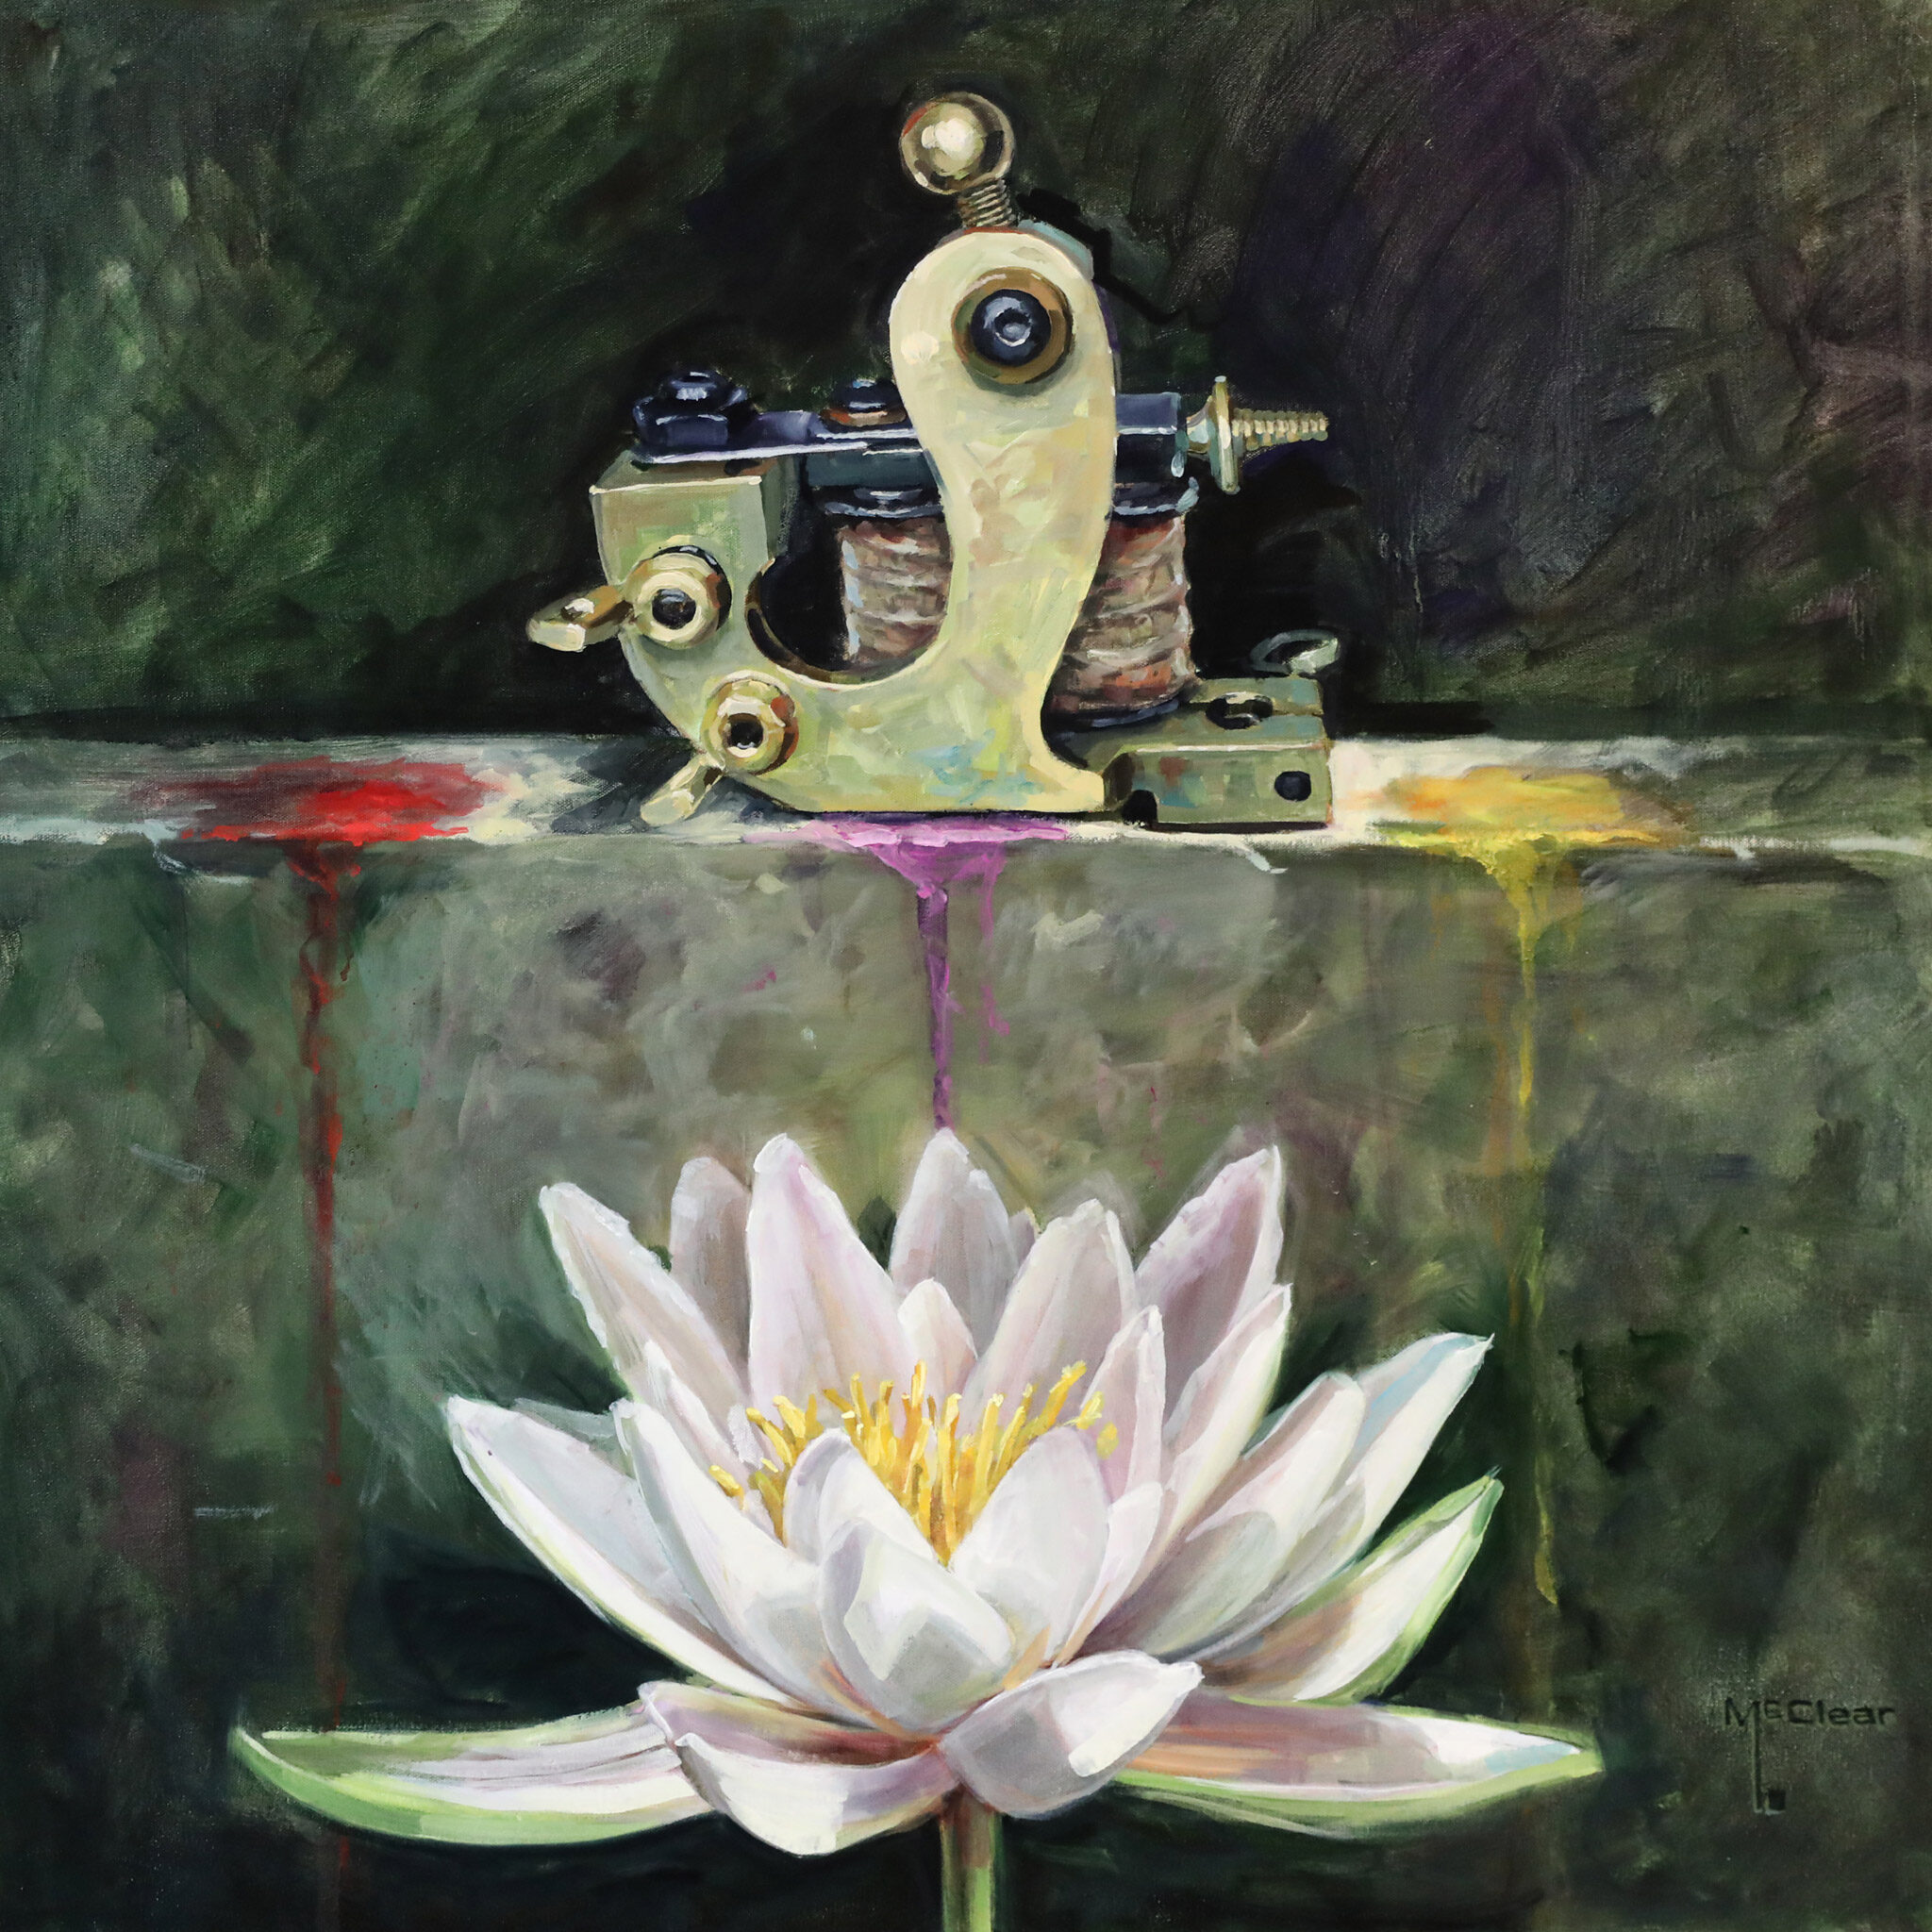 Ink & Lotus Blossom by: Brian McClear